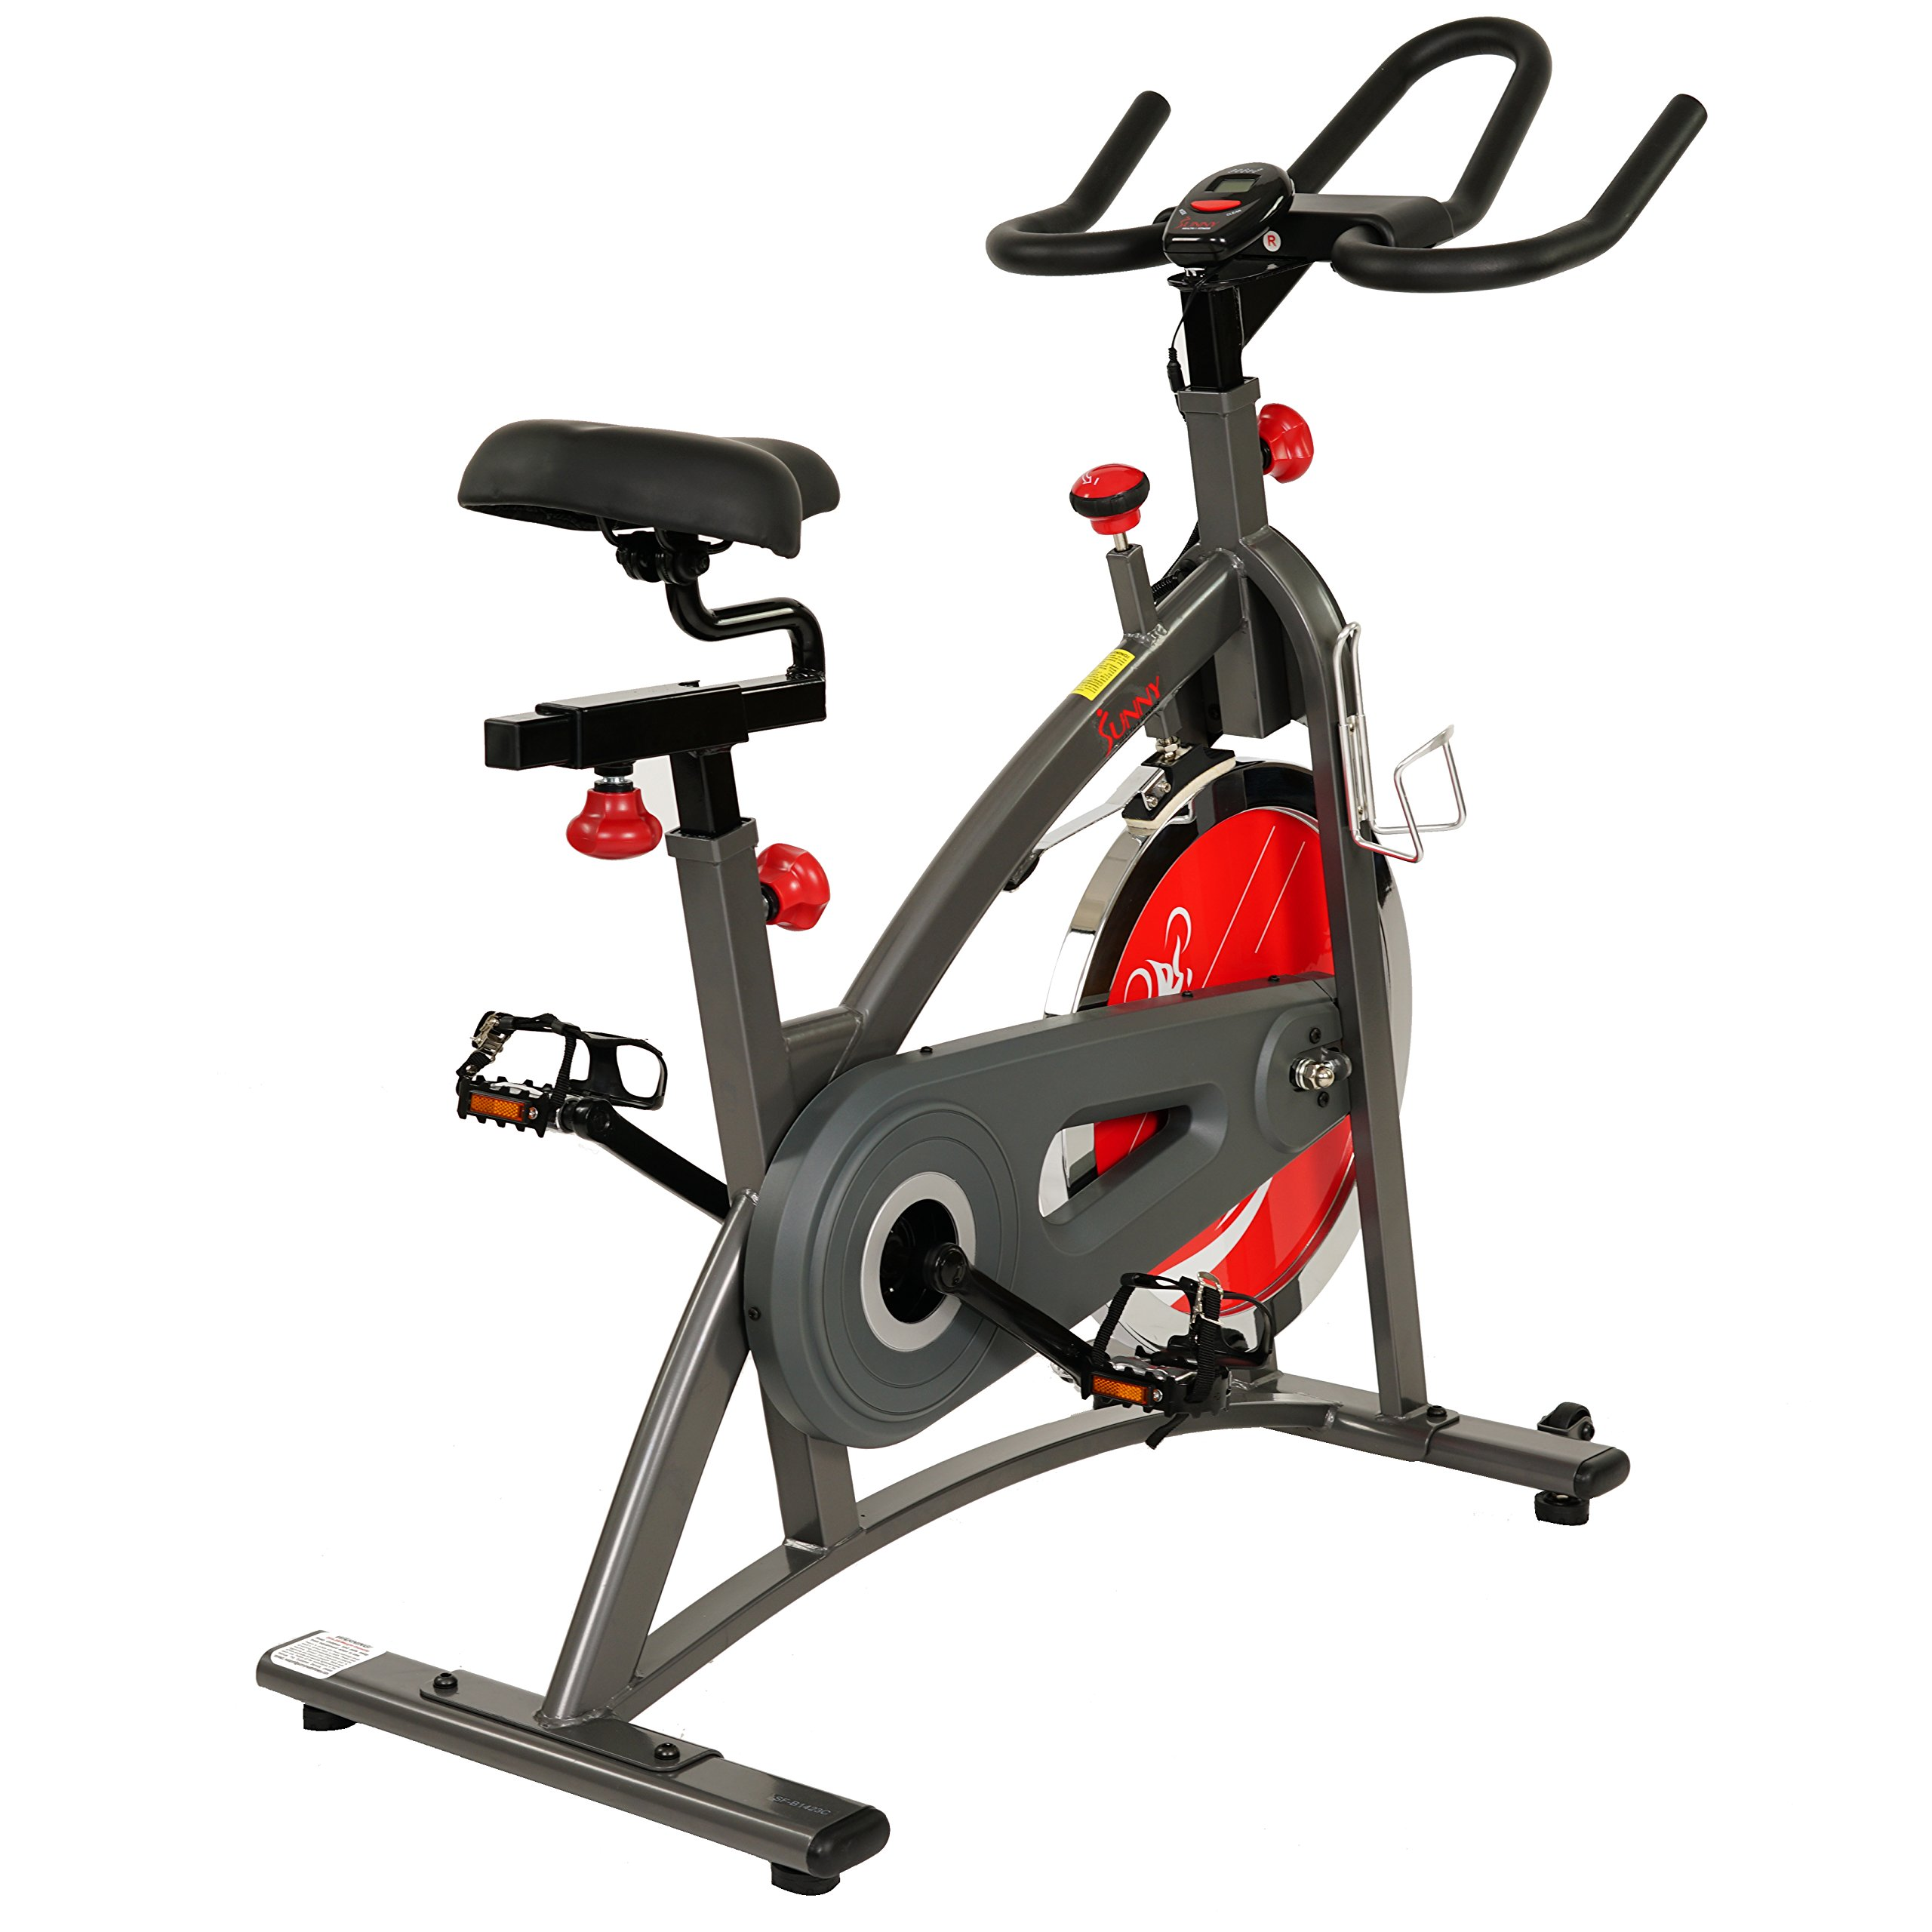 Sunny Health & Fitness Belt Drive Indoor Cycling Bike SF-B1423 by Sunny Health & Fitness (Image #14)